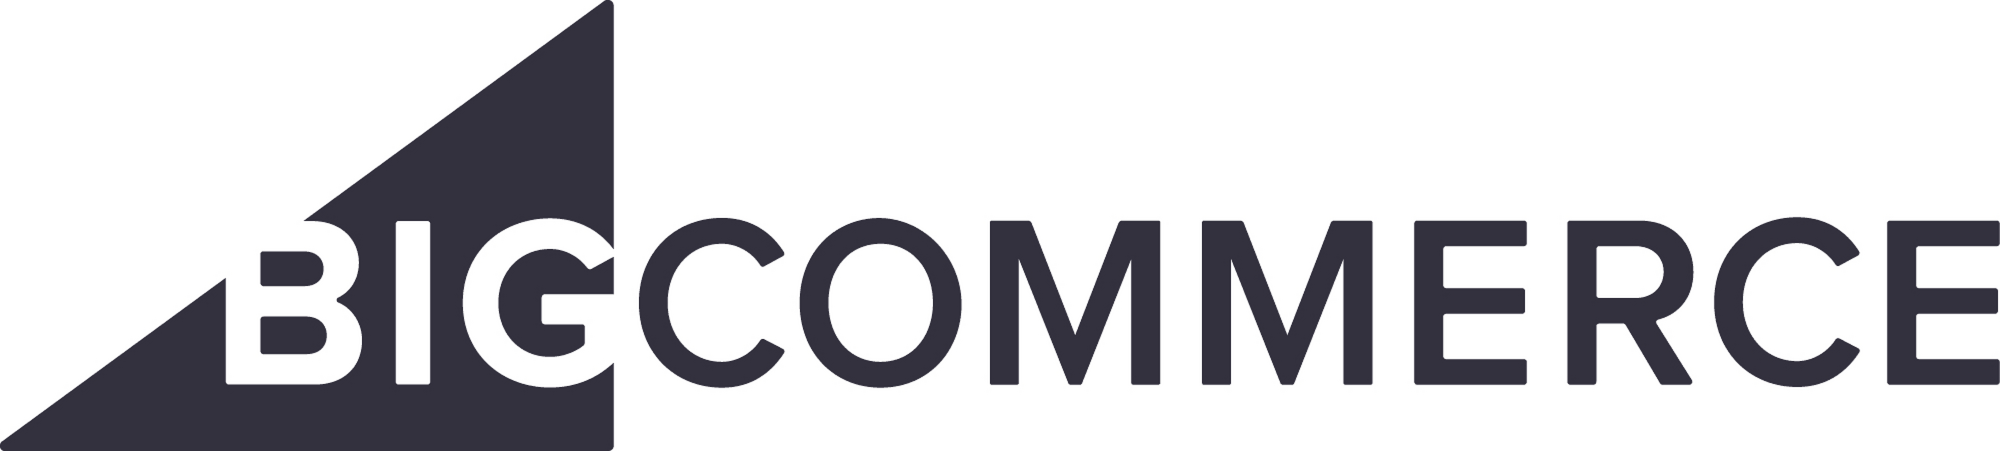 BigCommerce UK Ltd